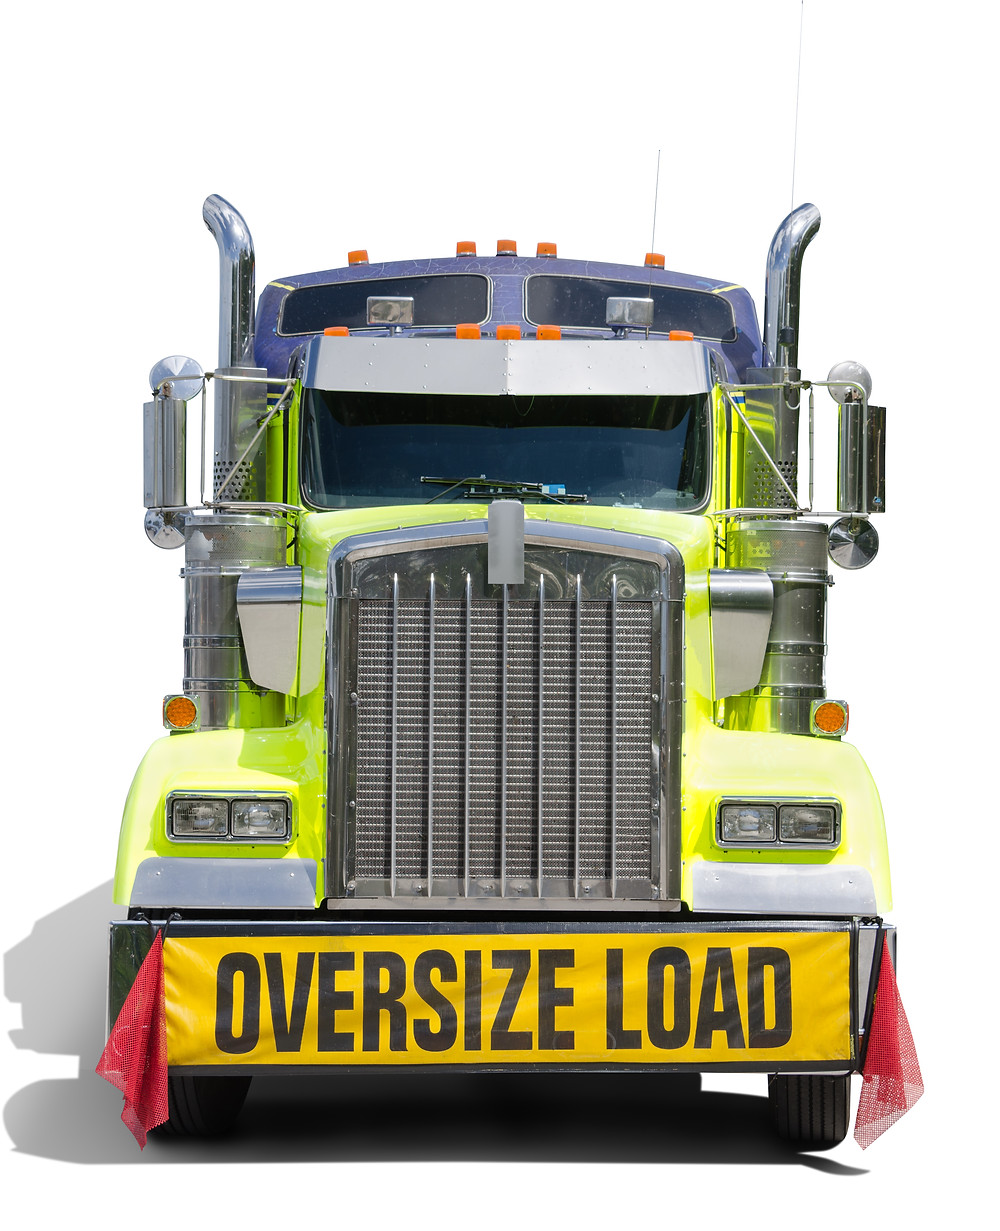 Oversize Load Truck Image